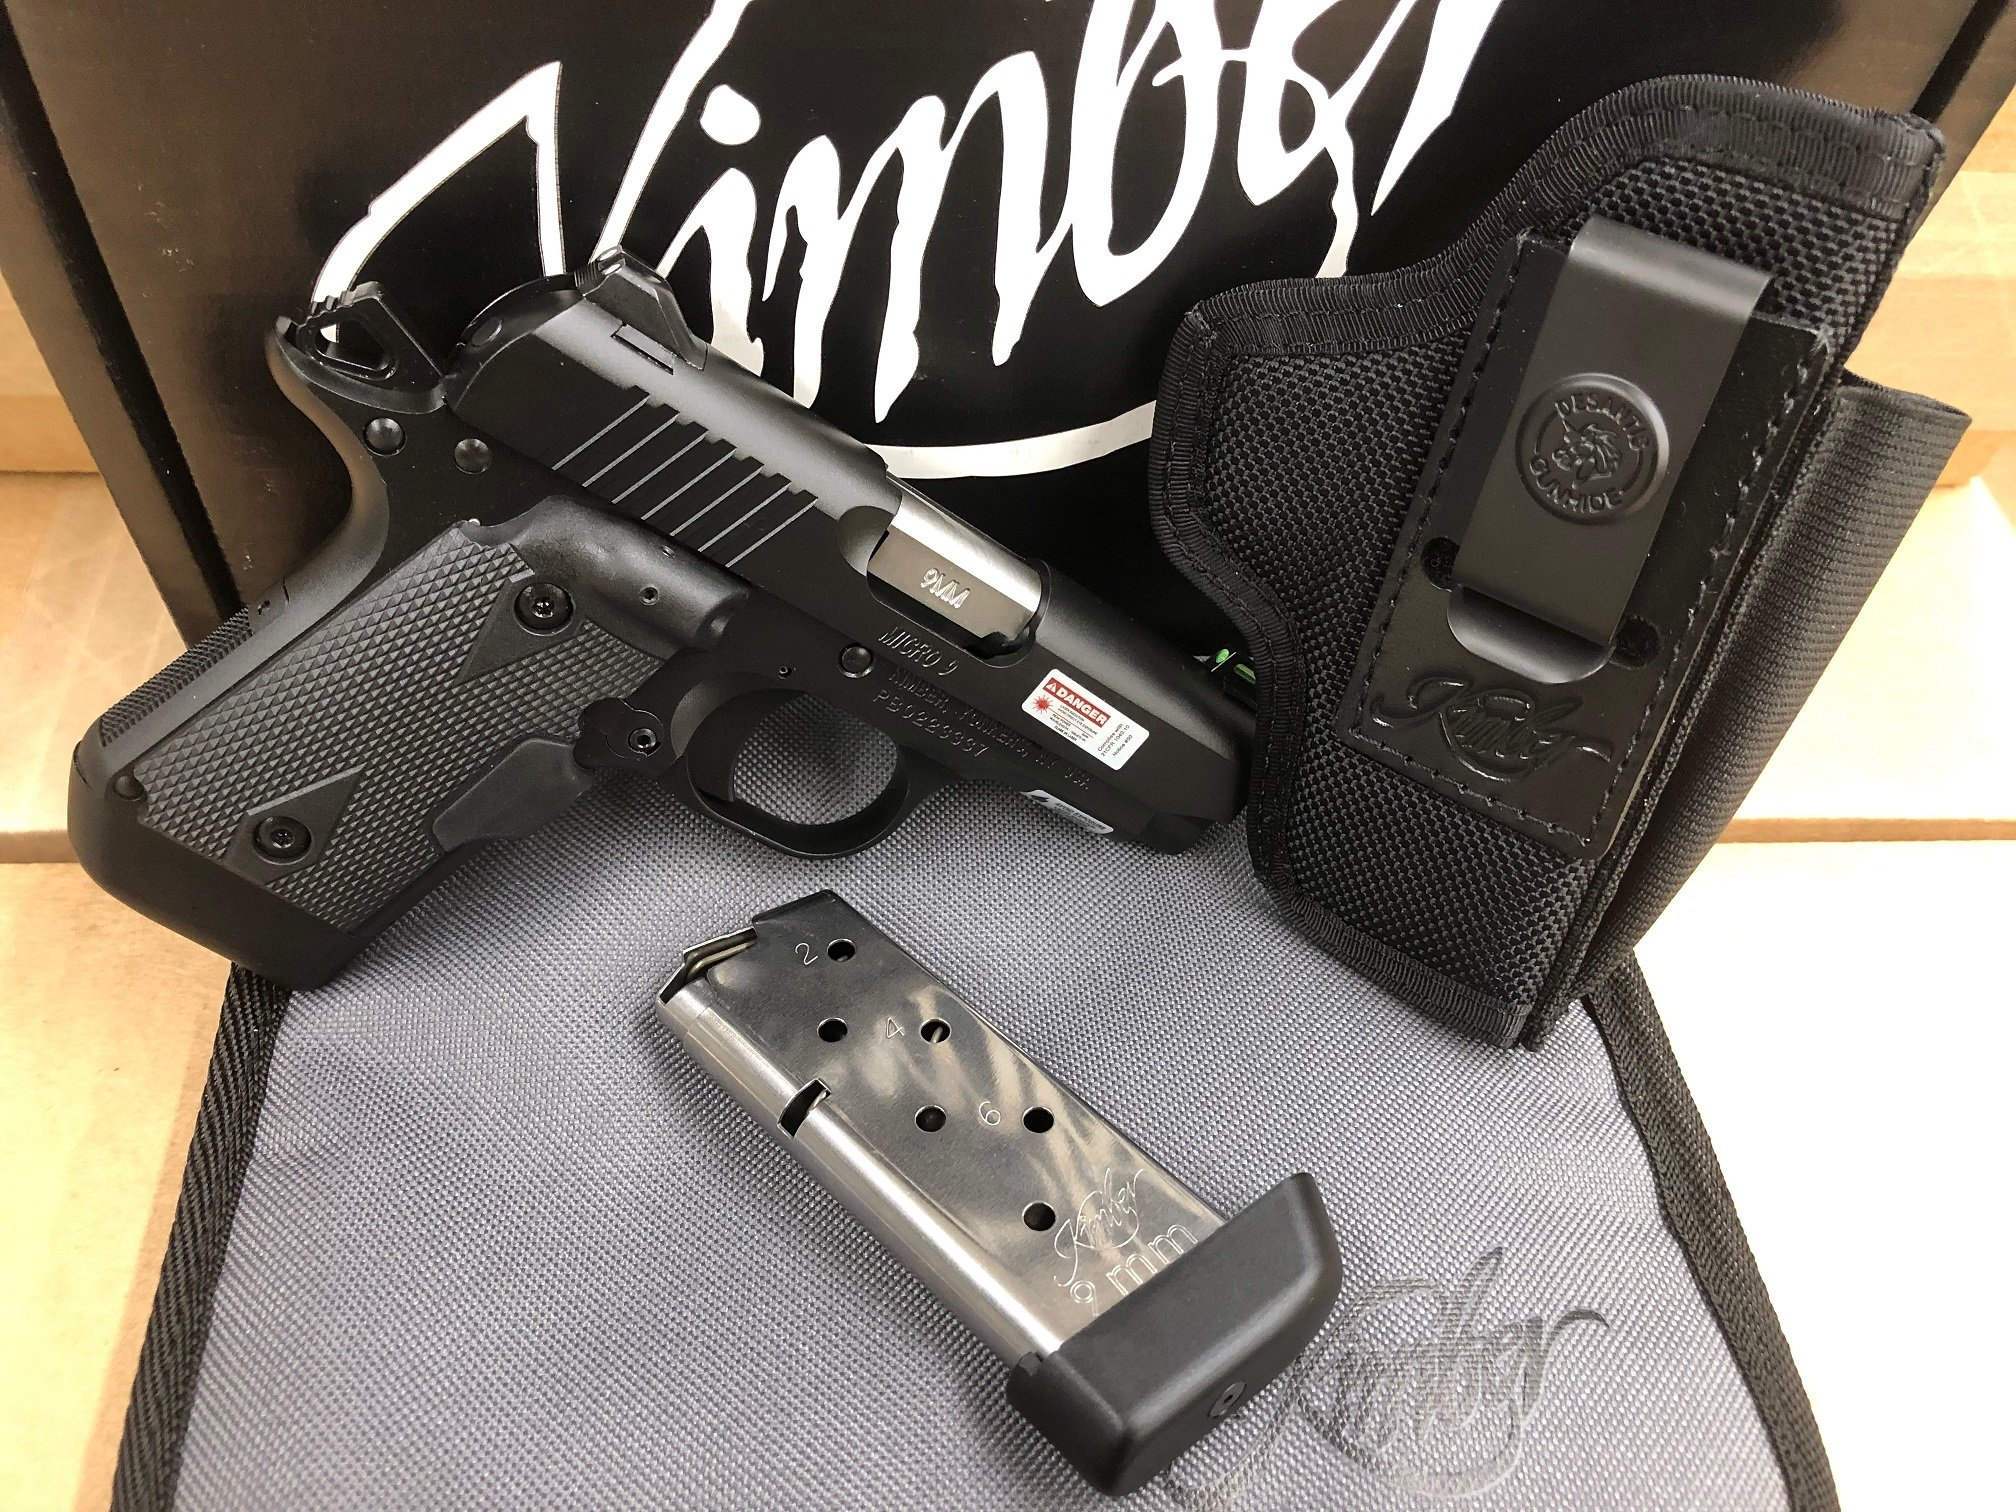 Kimber Micro 9mm SHOT SHOW 2019 Special with two 7rd mags, laser grip, and  desantis holster! - $579 99 (Free S/H on Firearms)